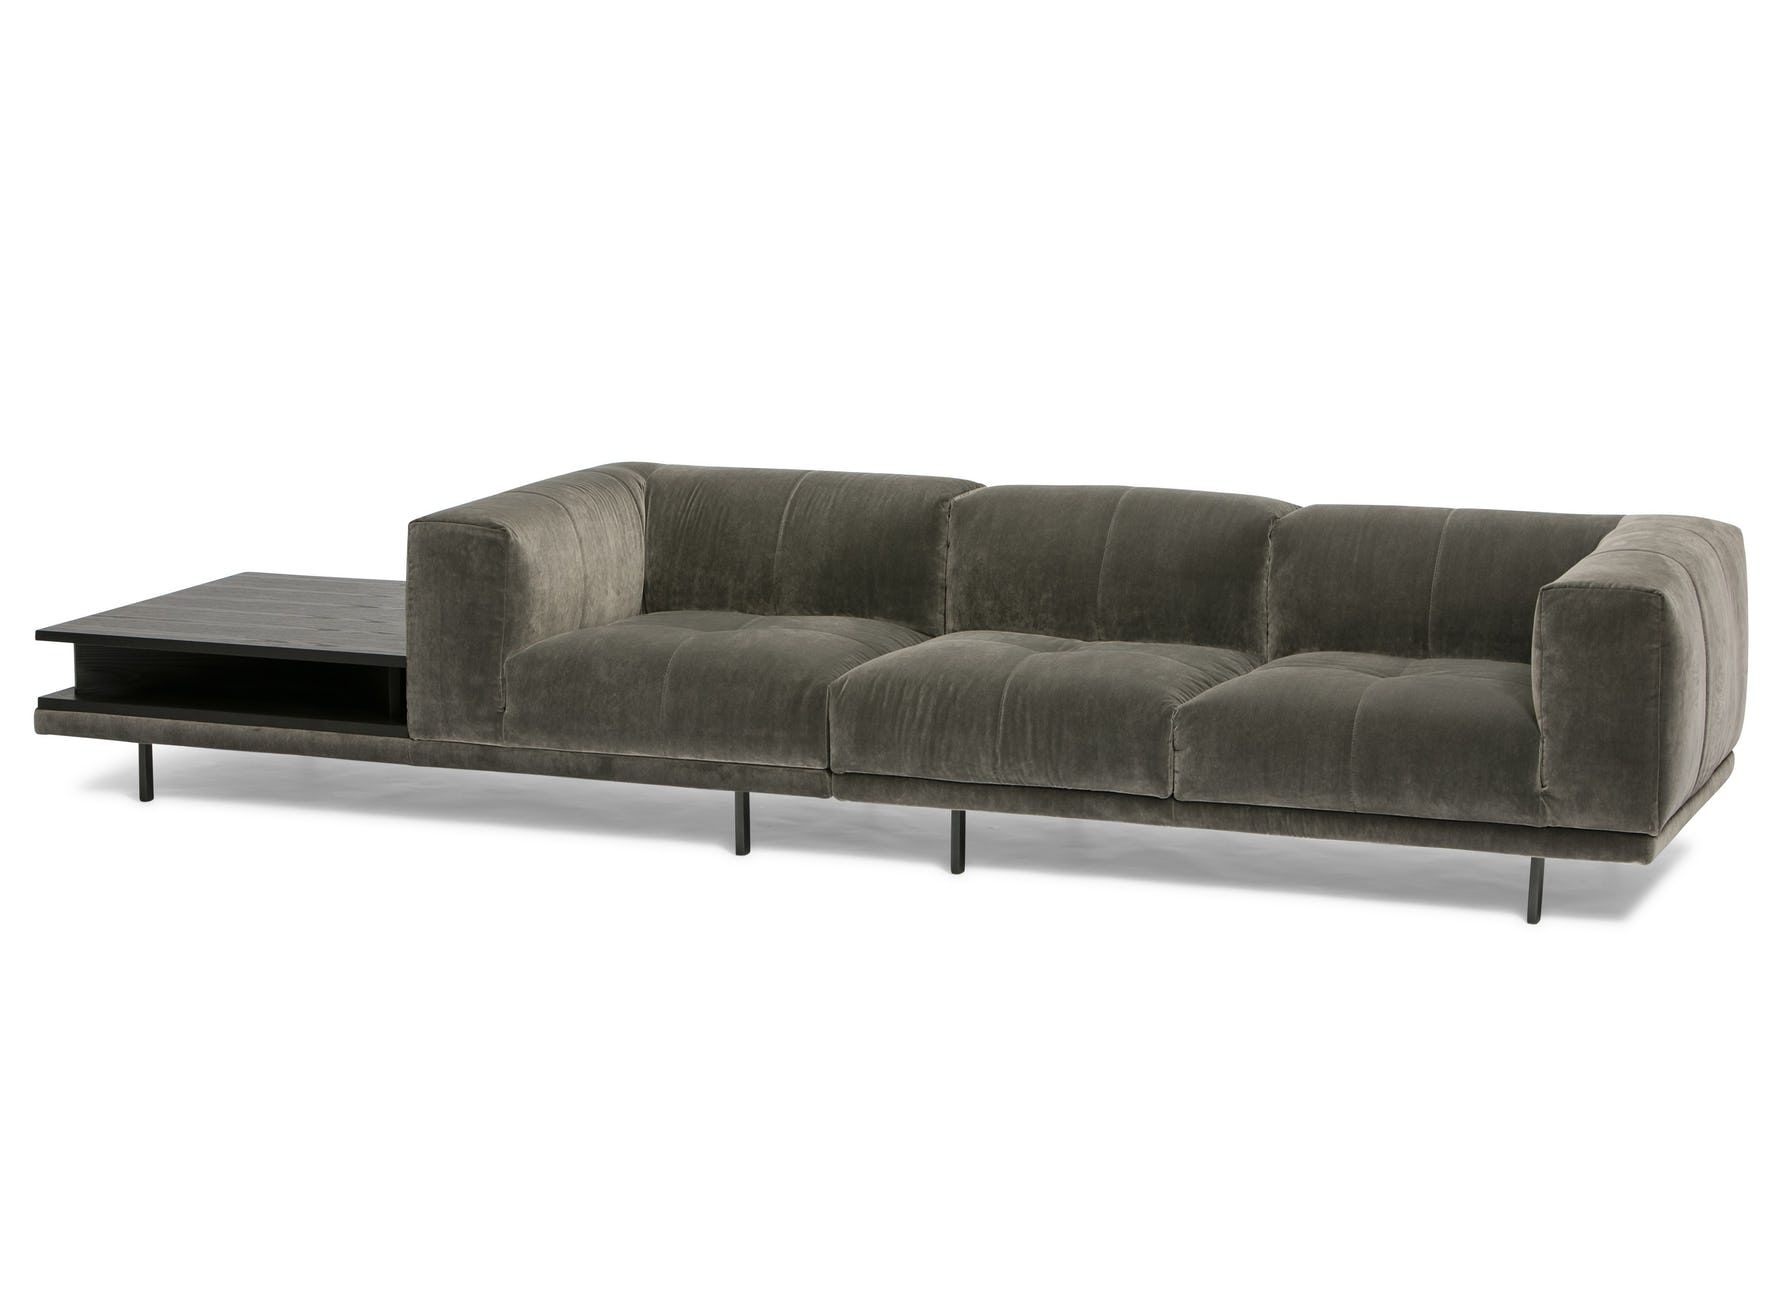 Desire Sofa By Linteloo Now Available At Haute Living Sofa Contemporary Furniture Design Furniture